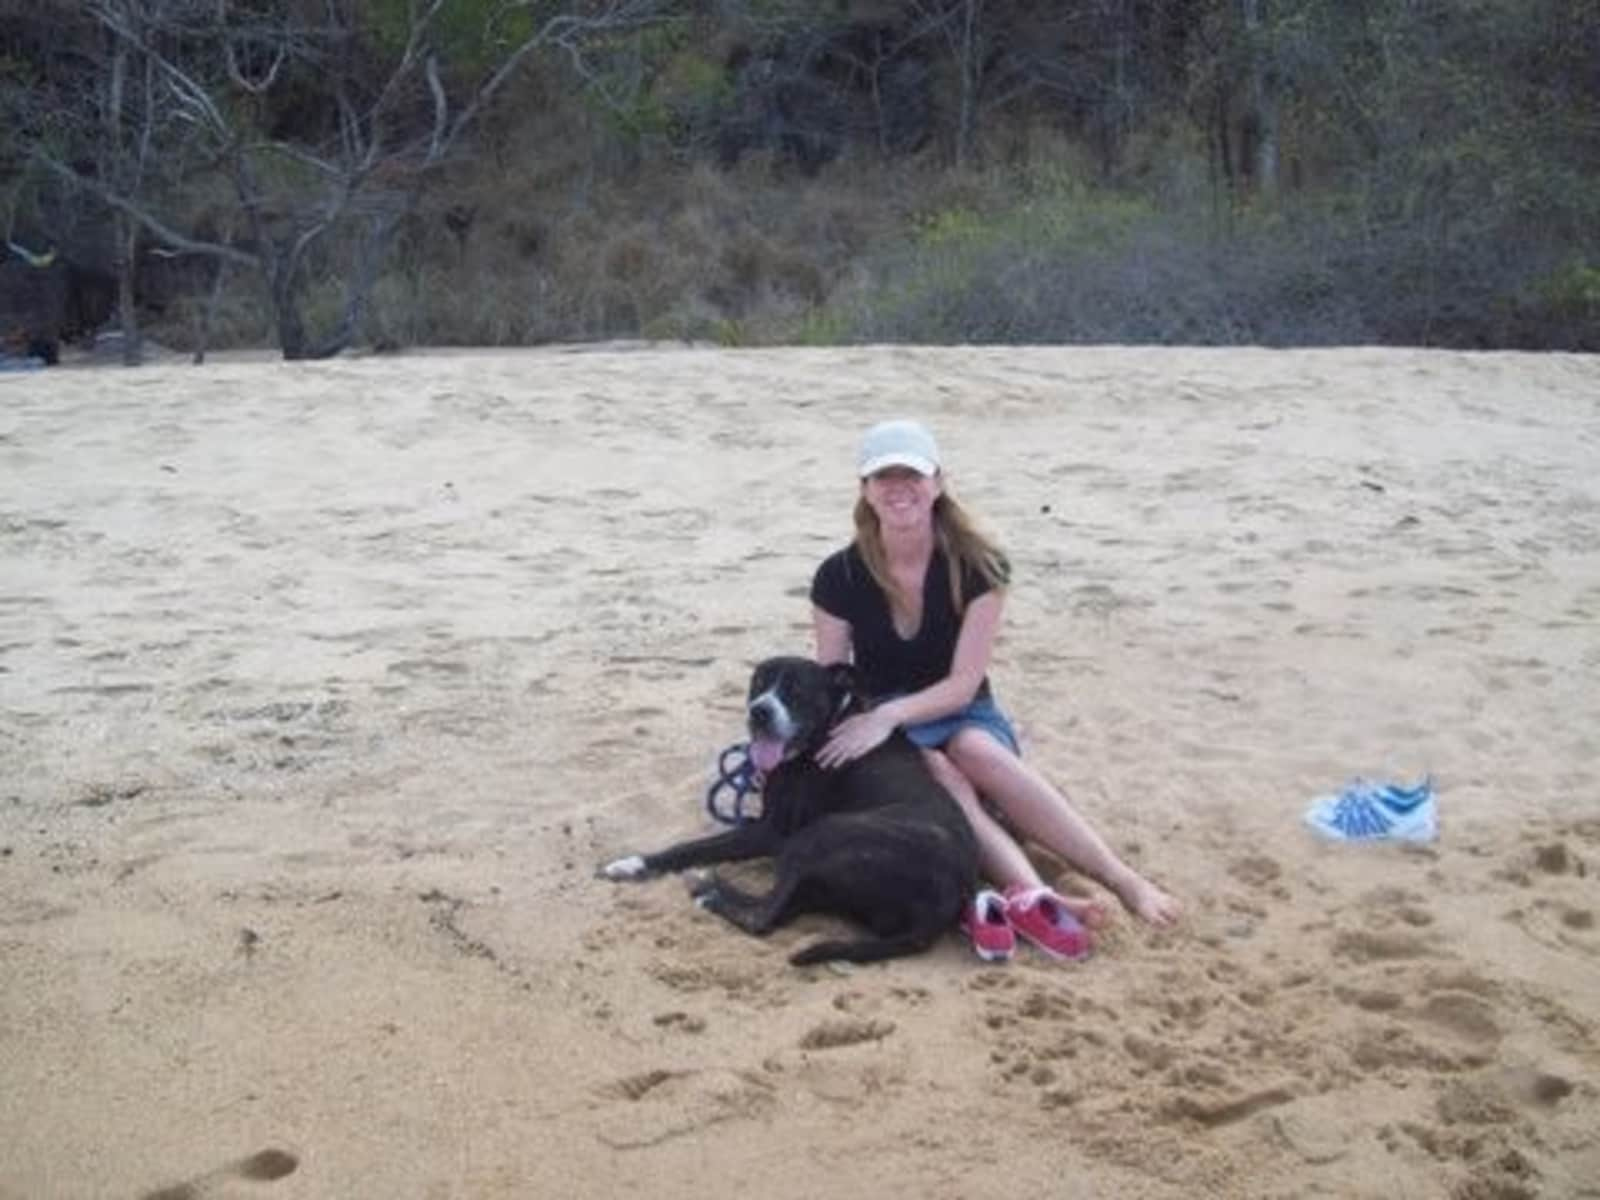 Kerry from Sydney, New South Wales, Australia